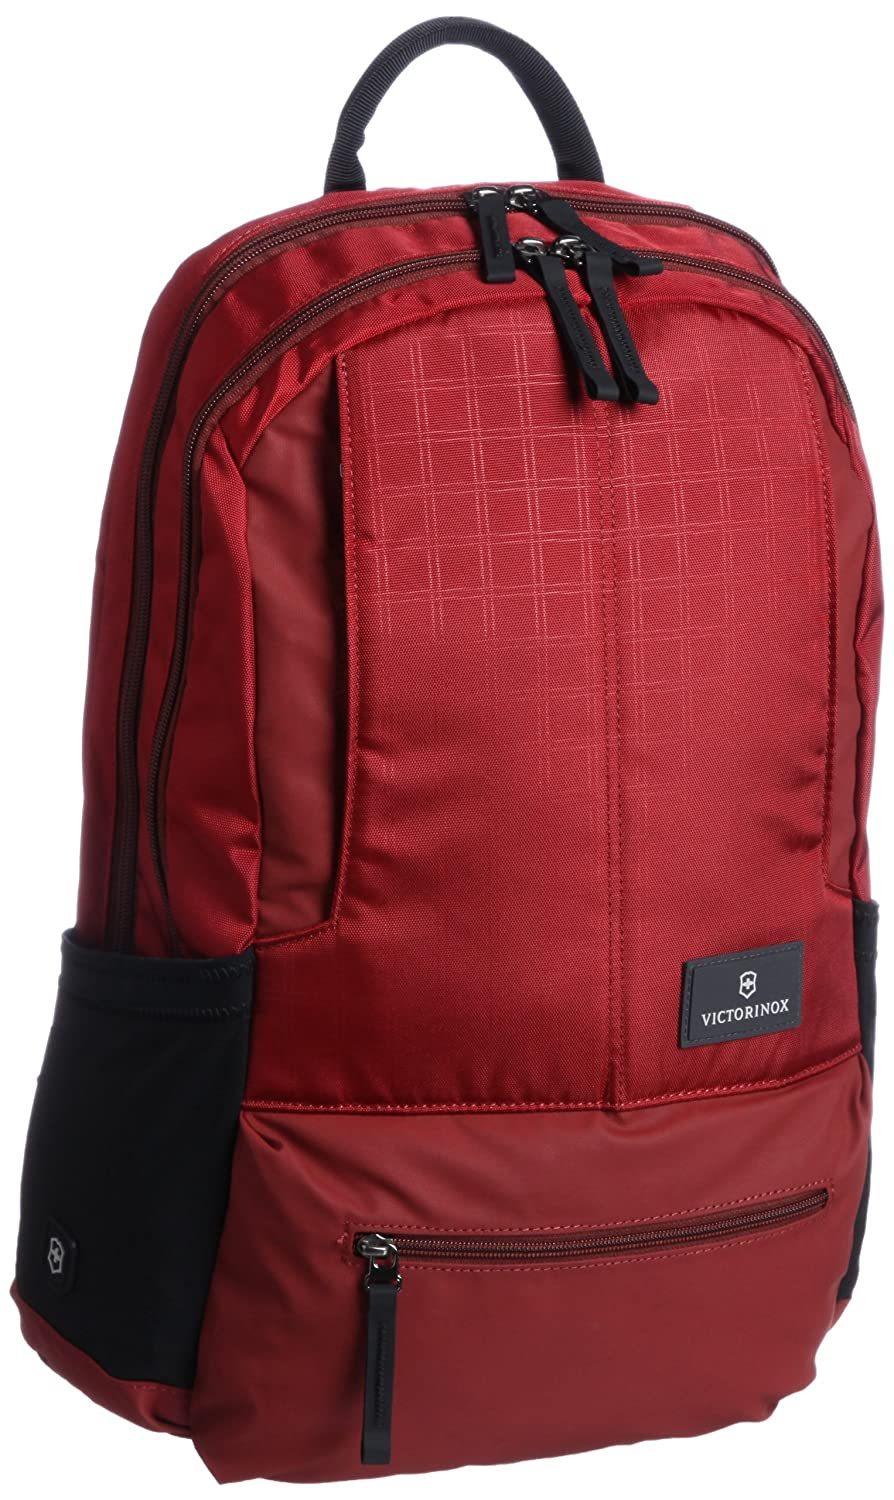 Victorinox Luggage Altmont 3.0 Laptop Backpack